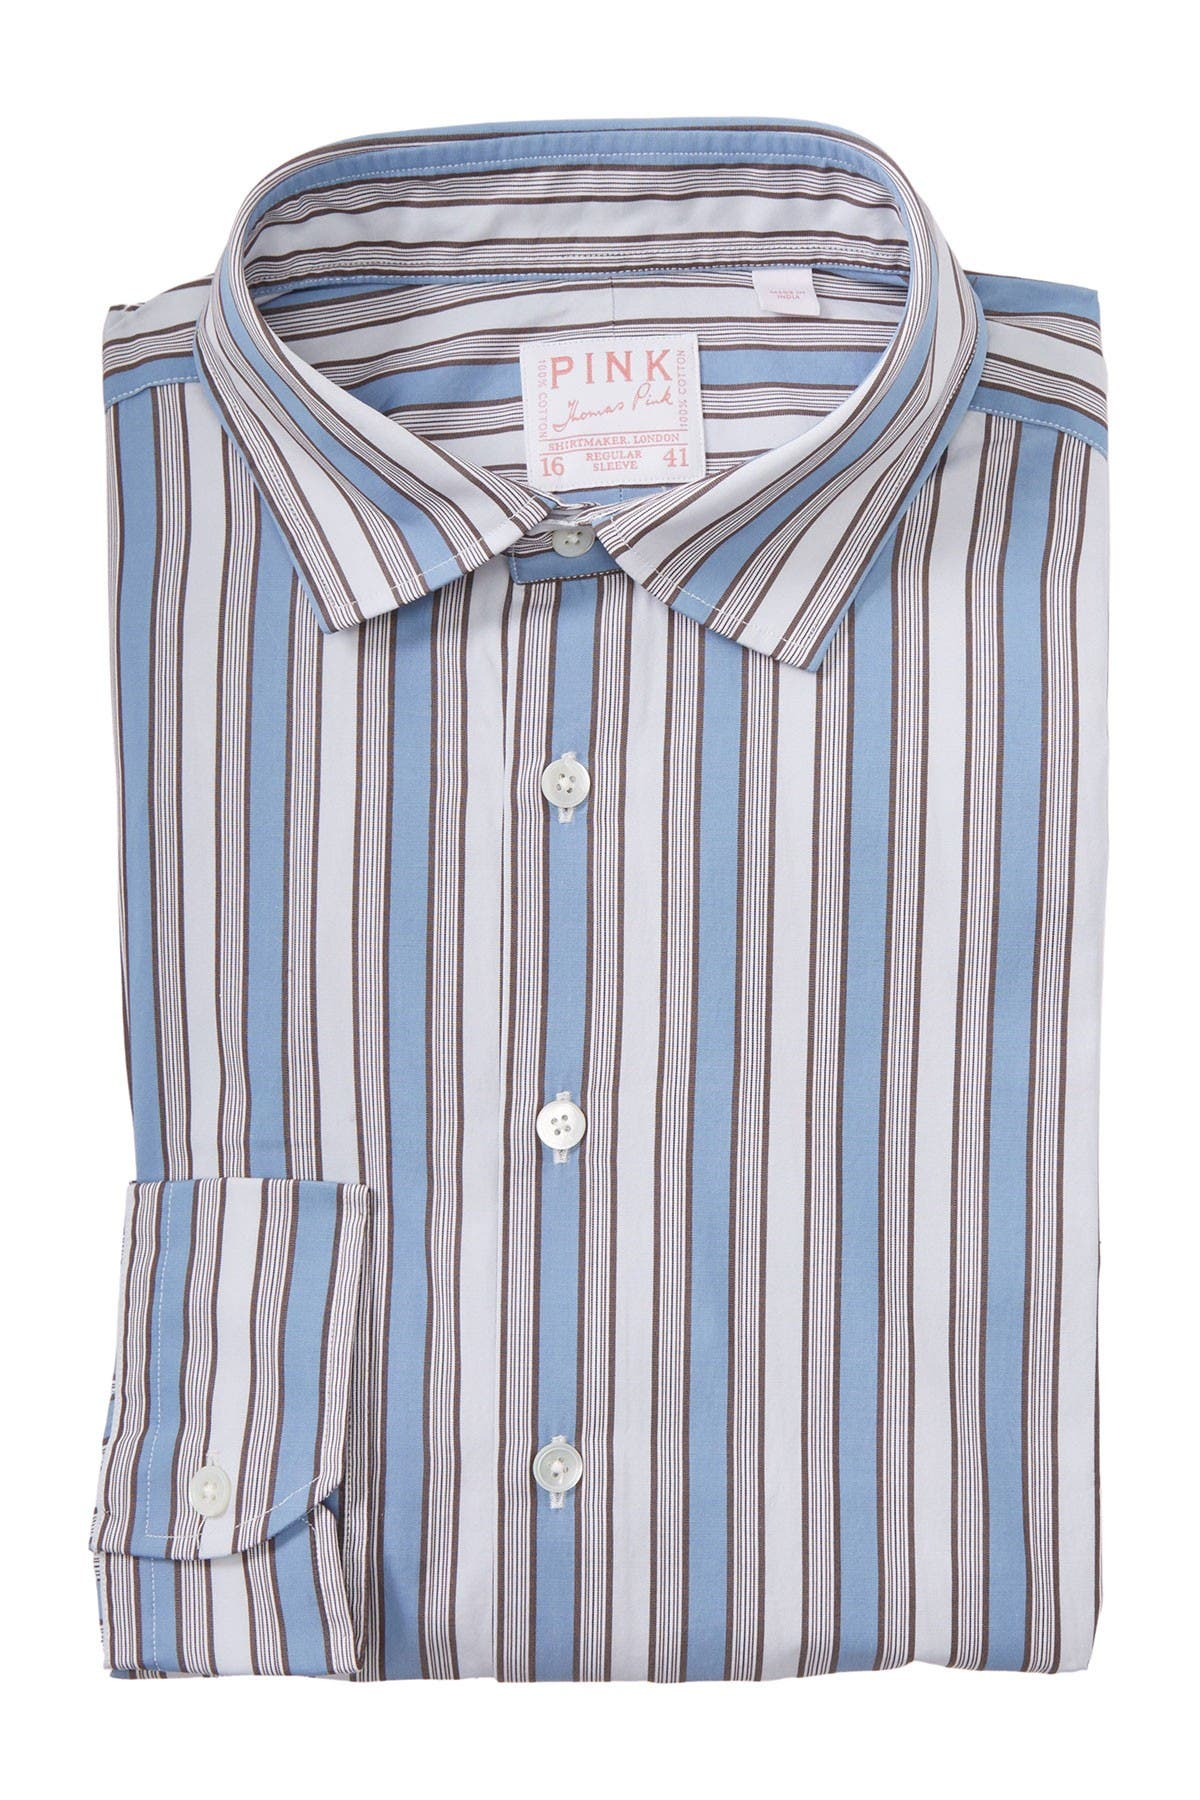 Image of THOMAS PINK Portland Vintage Stripe Print Dress Shirt